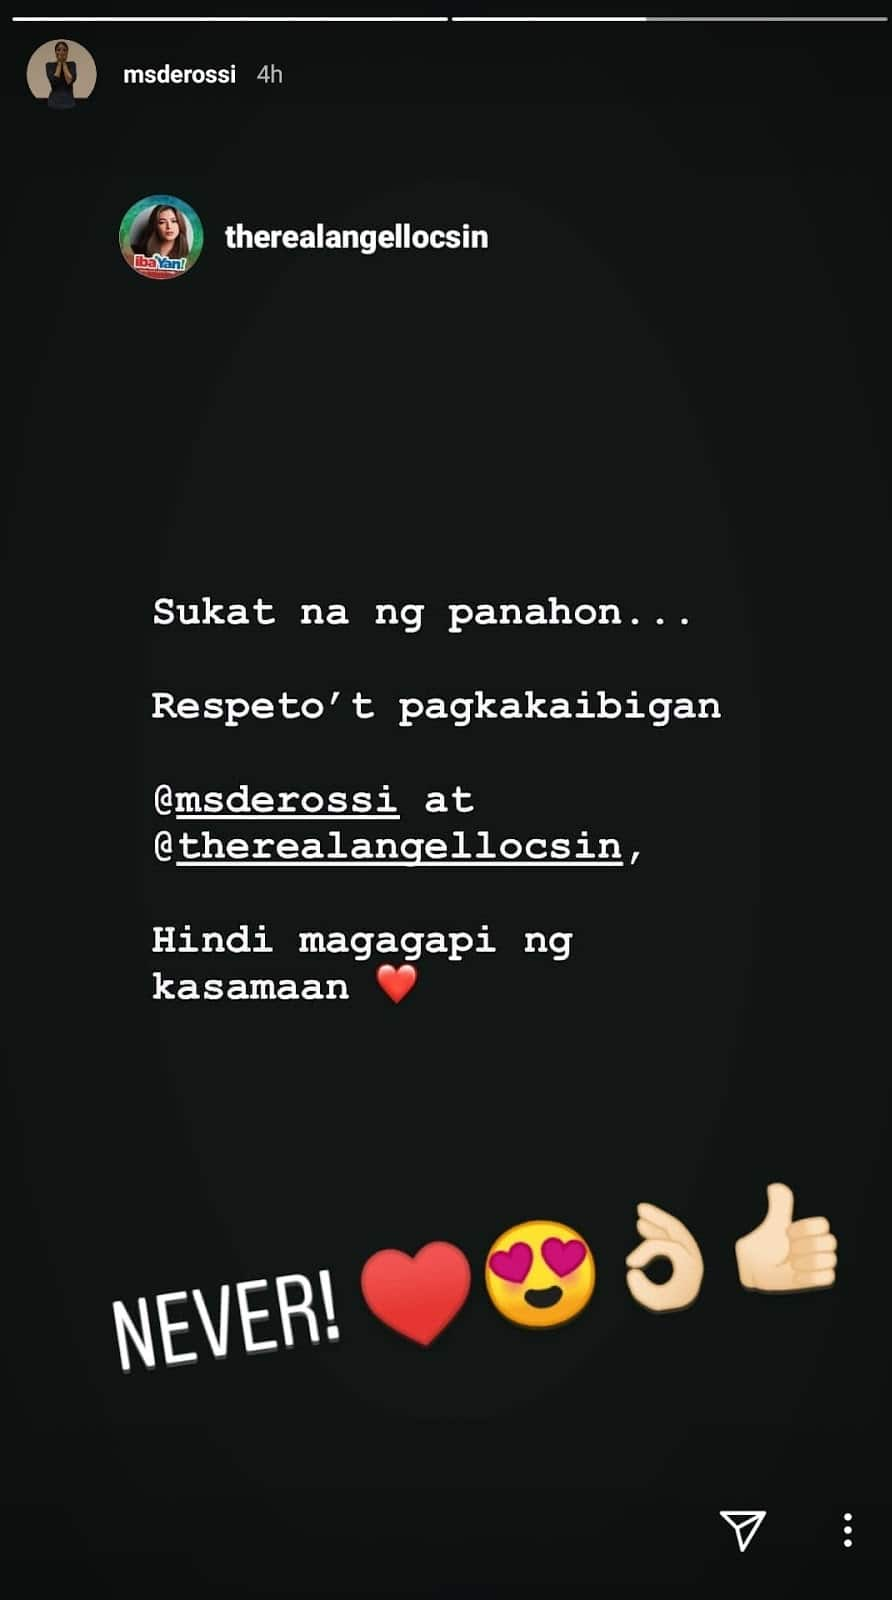 Angel Locsin posts about Alessandra de Rossi's comments on ABS-CBN protest